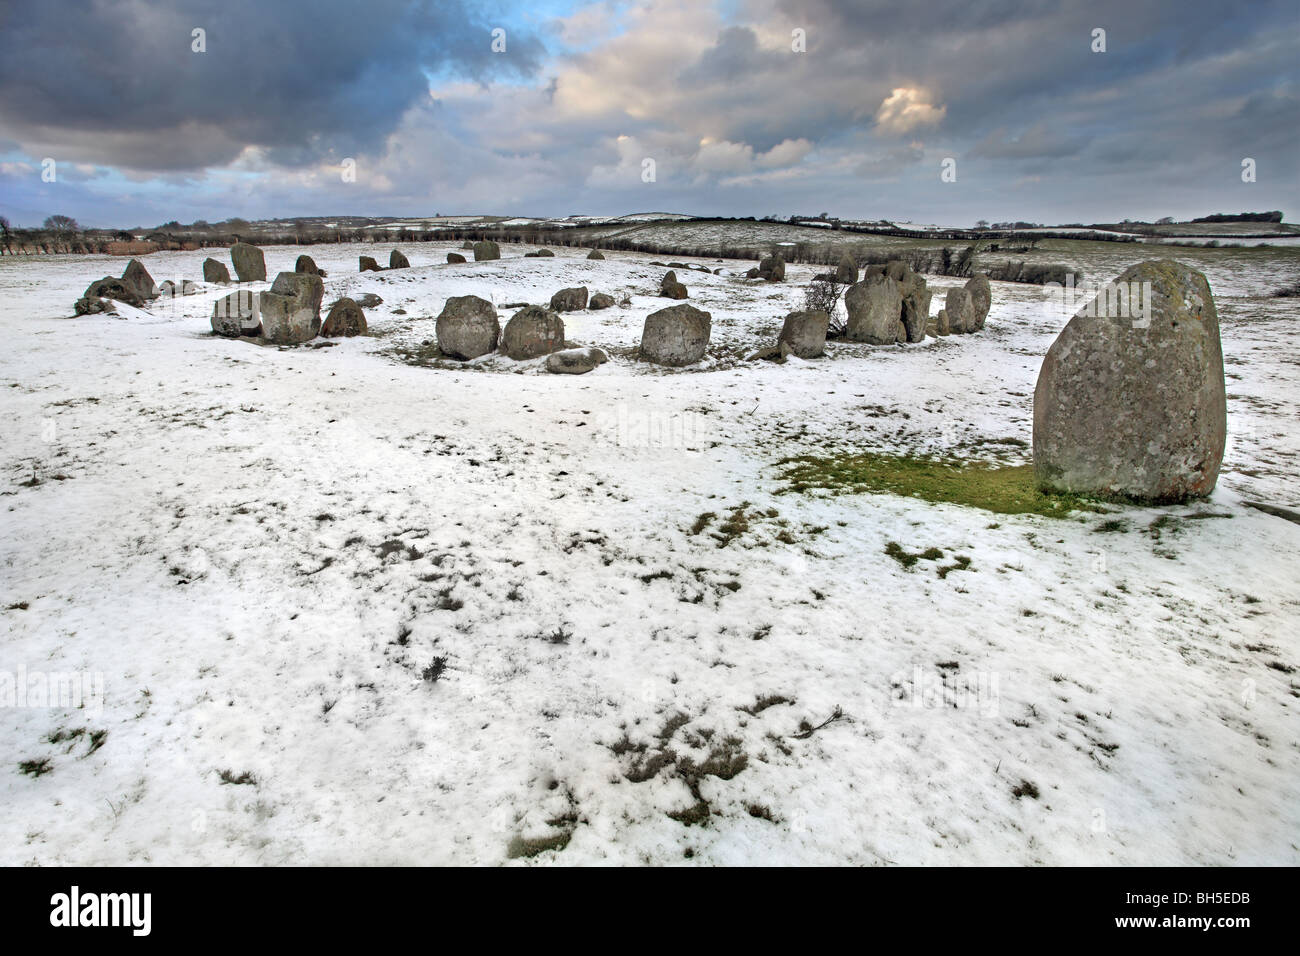 Ballynoe stone circle in the snow, Co Down. - Stock Image